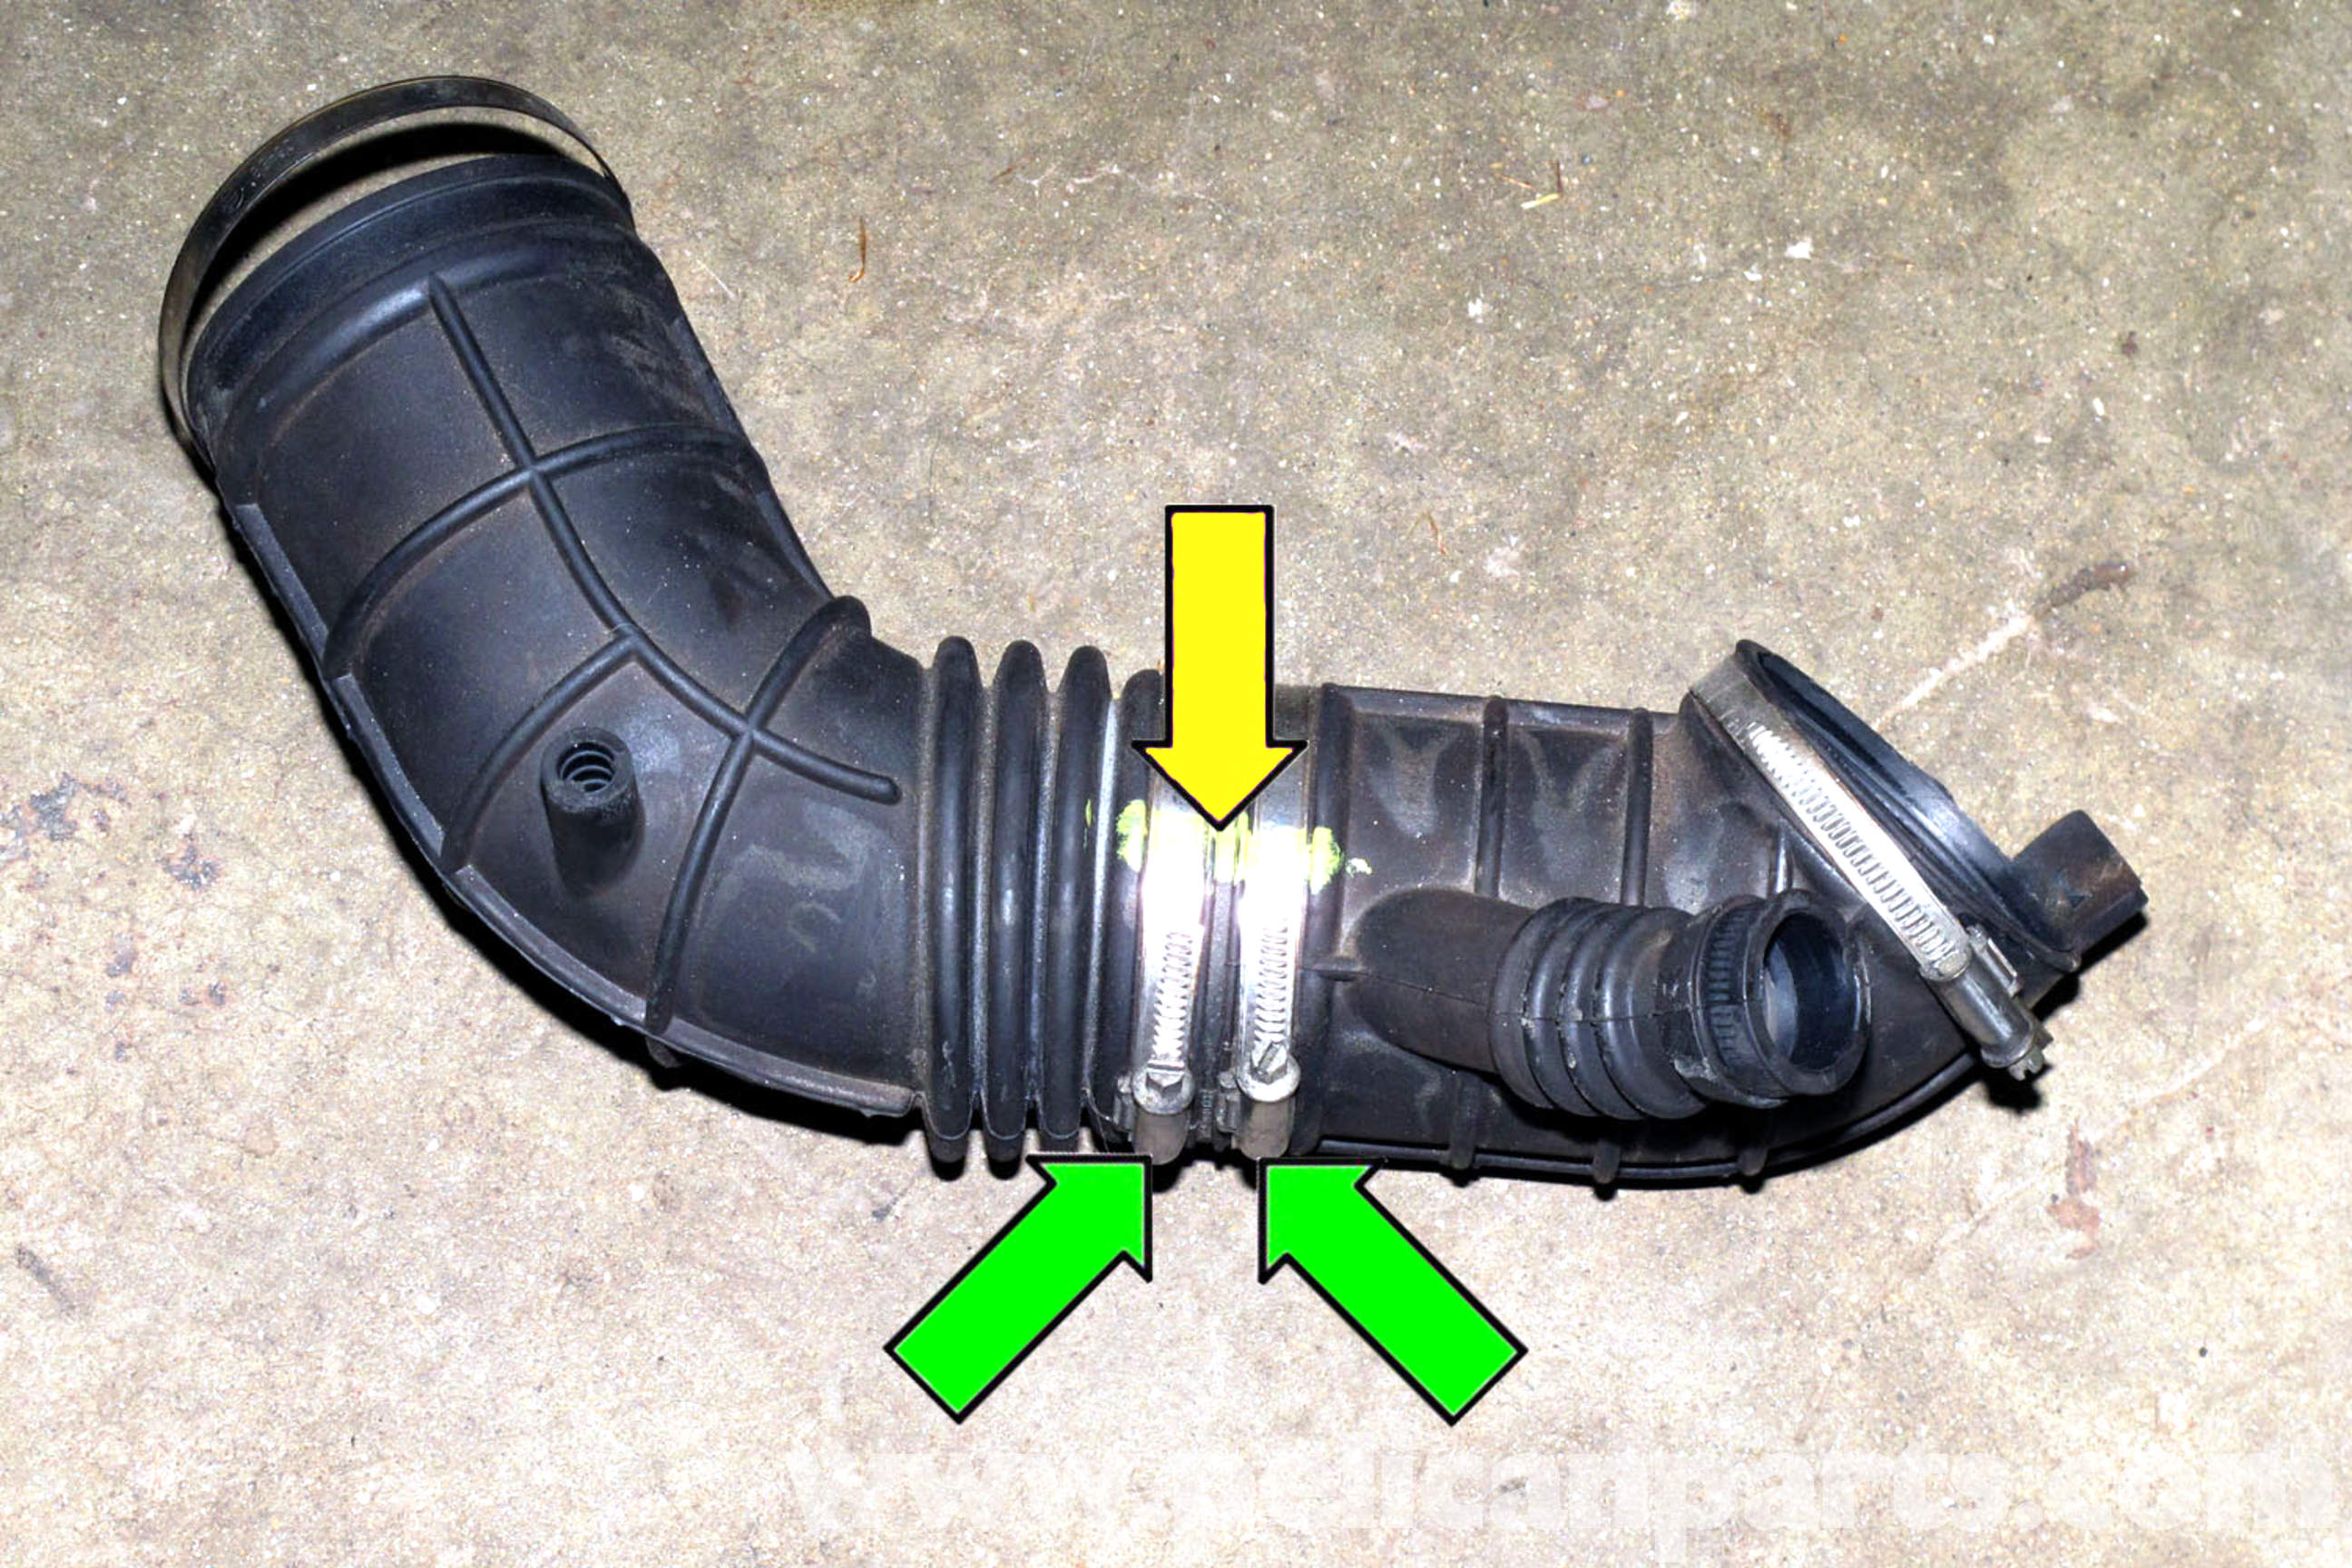 in addition Pic further Maxresdefault likewise Pic together with Maxresdefault. on 2006 bmw 325i radiator hose